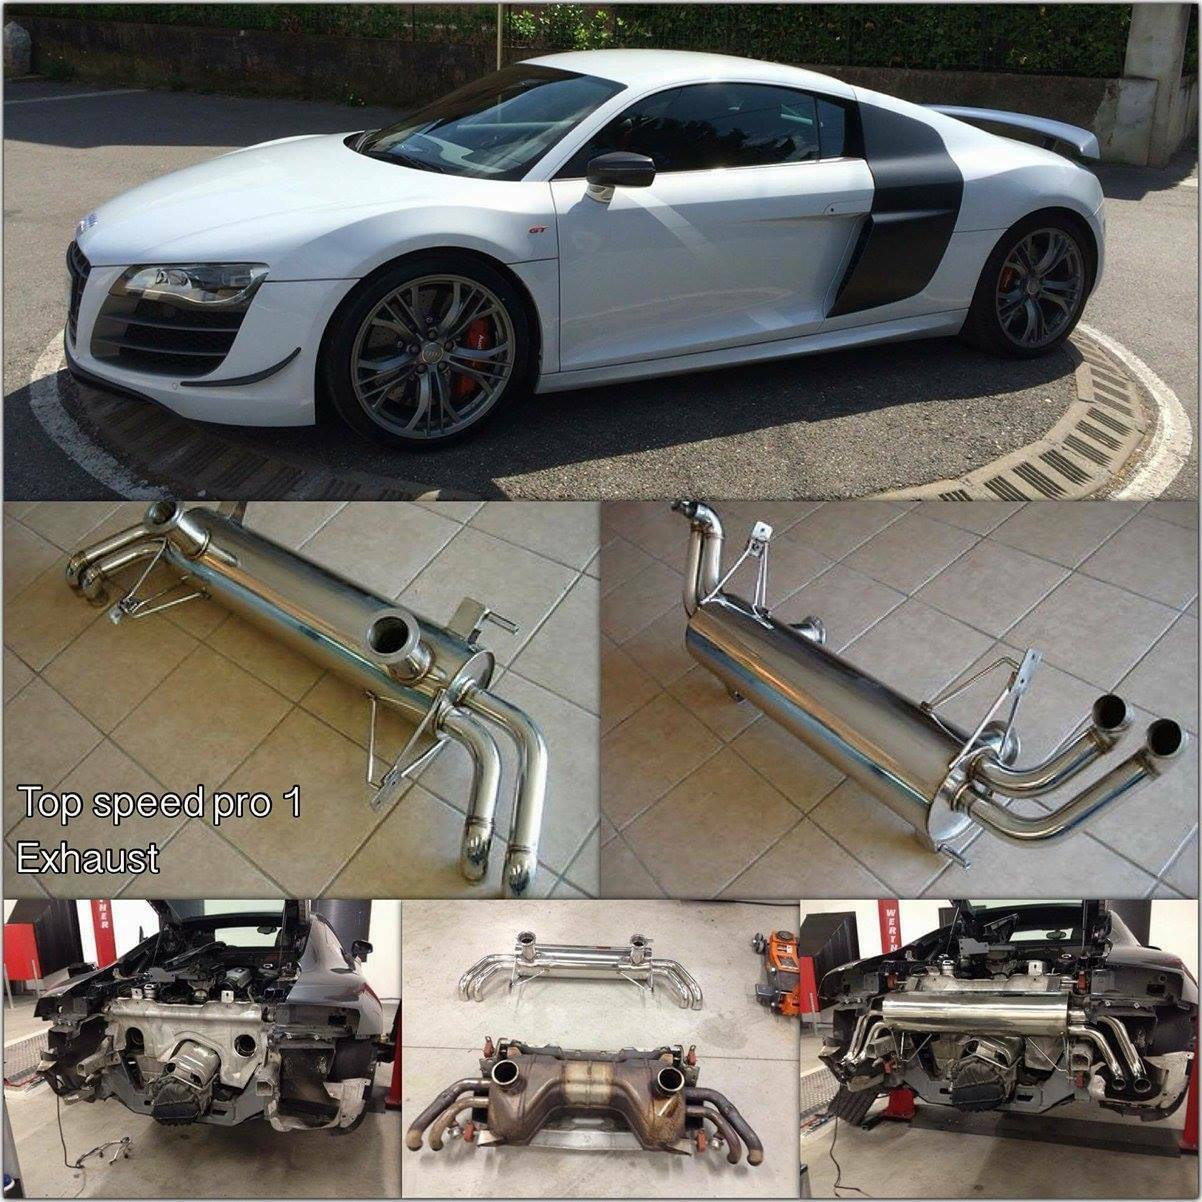 Turbo Kit Audi R8 V10: AUDI R8 5.2L V10 09-13 T304 Rear Section Performance